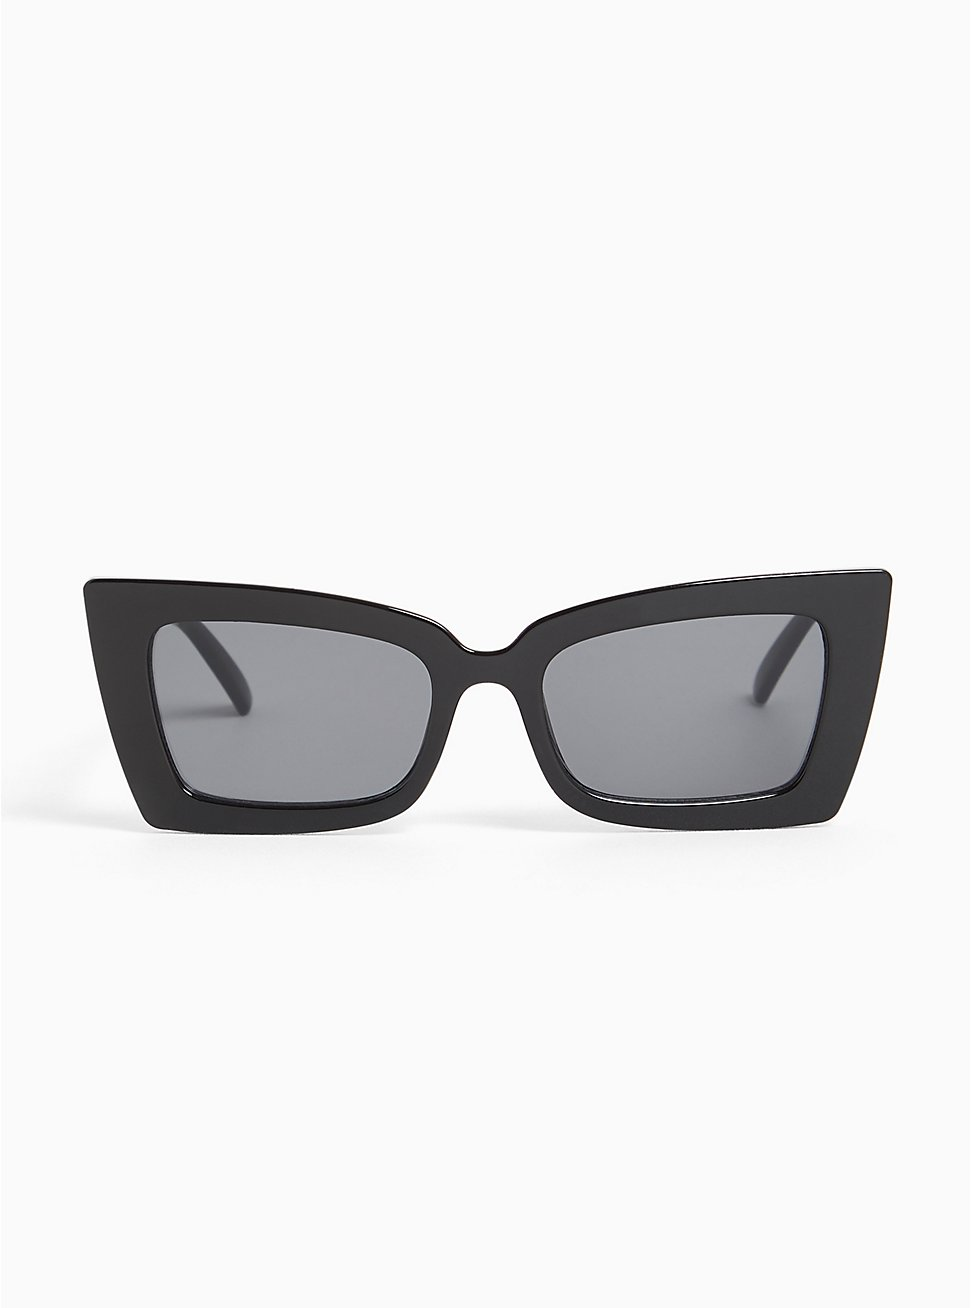 Black Small Rectangle Sunglasses, , hi-res